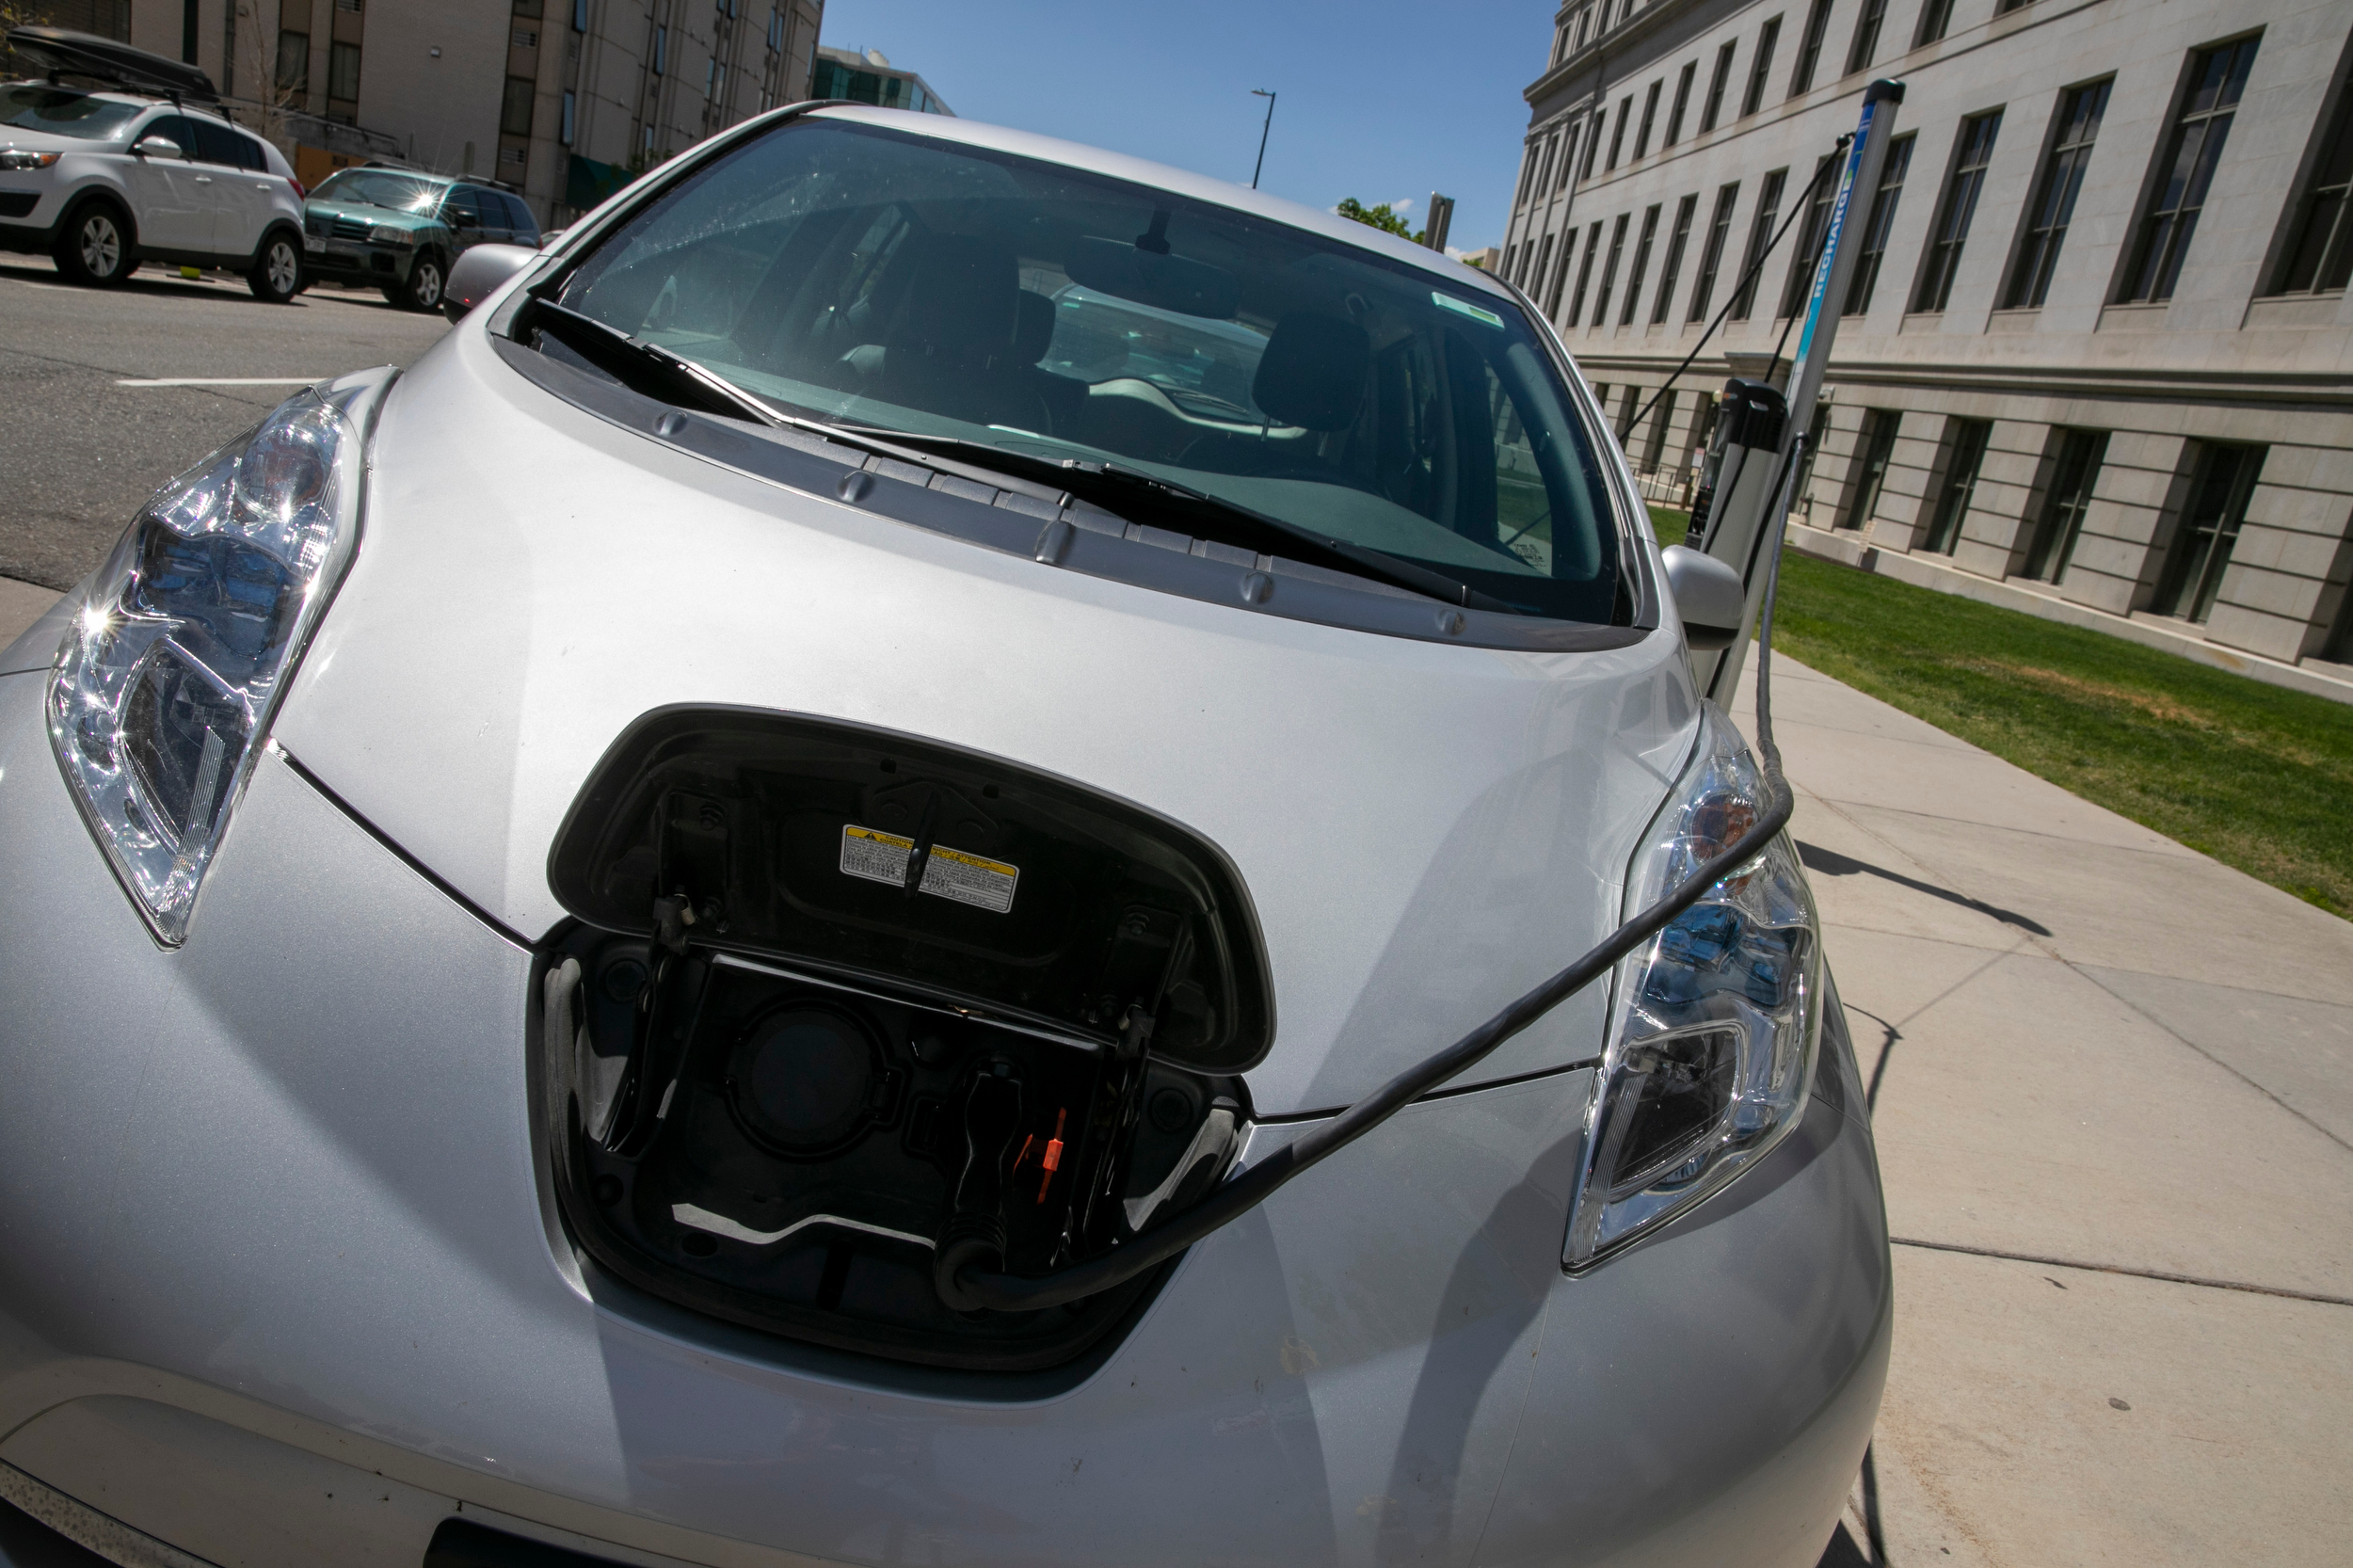 A charging station for electric-powered cars outside Denver's City and County Building